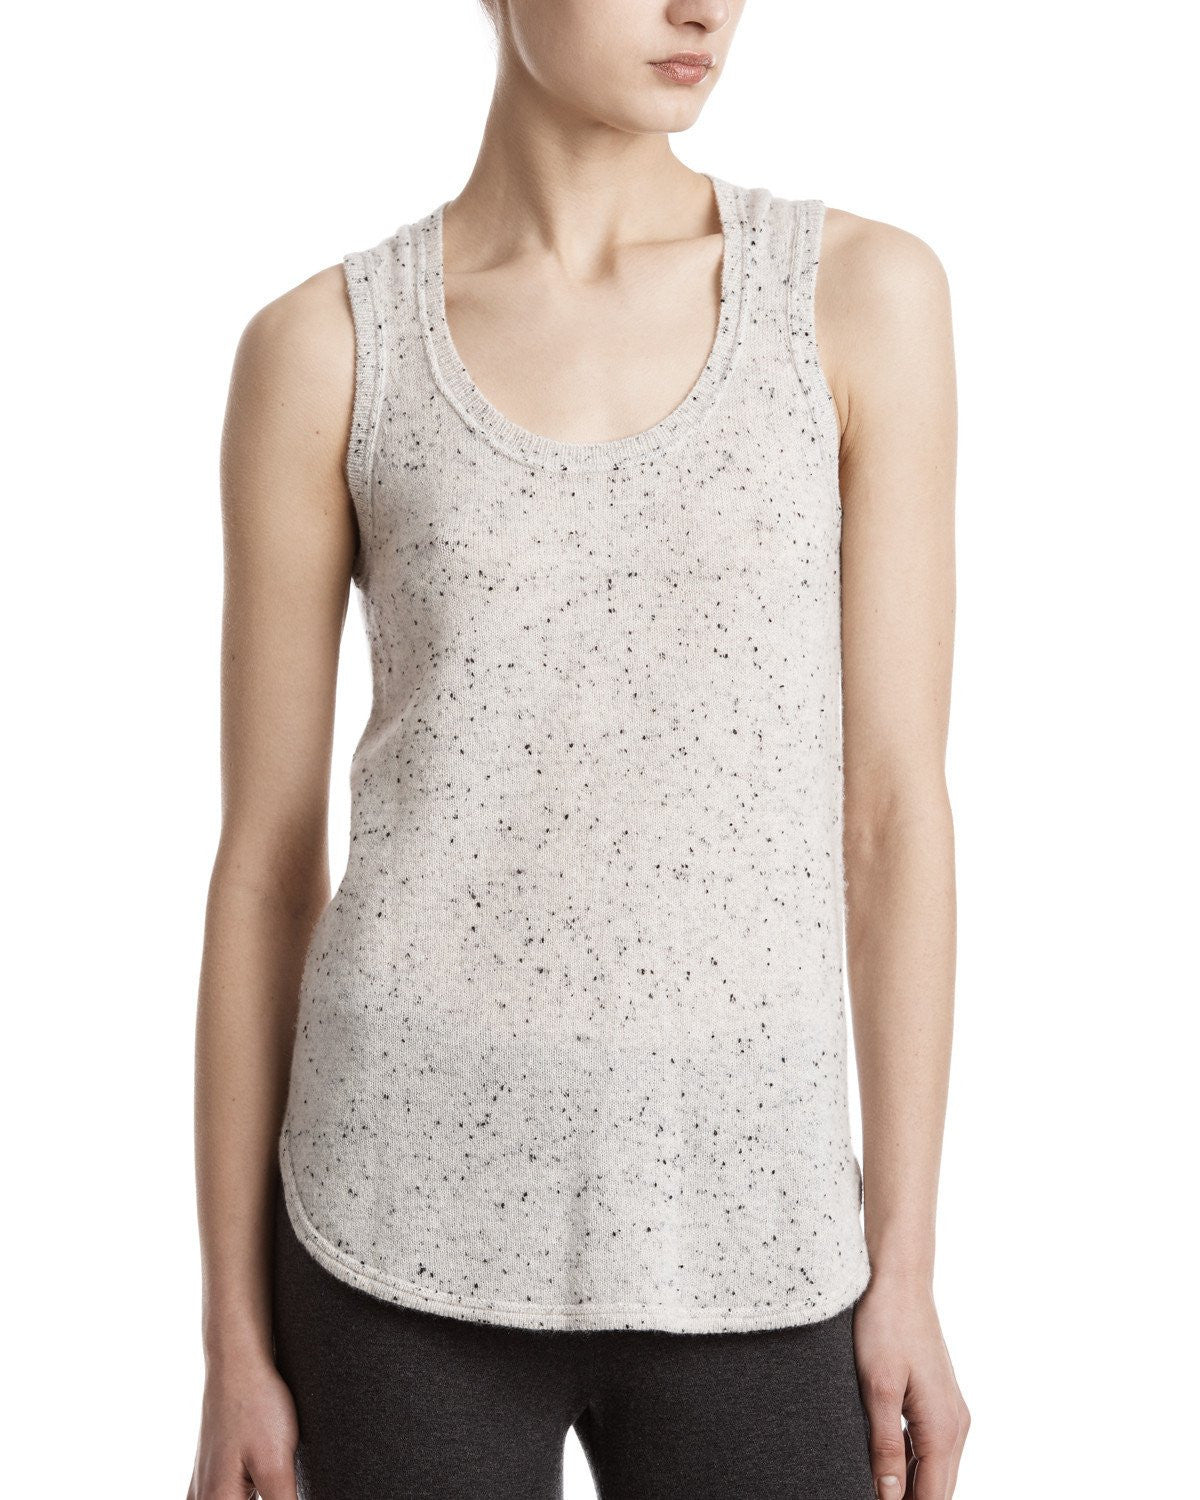 ATM Donegal Cashmere Tank